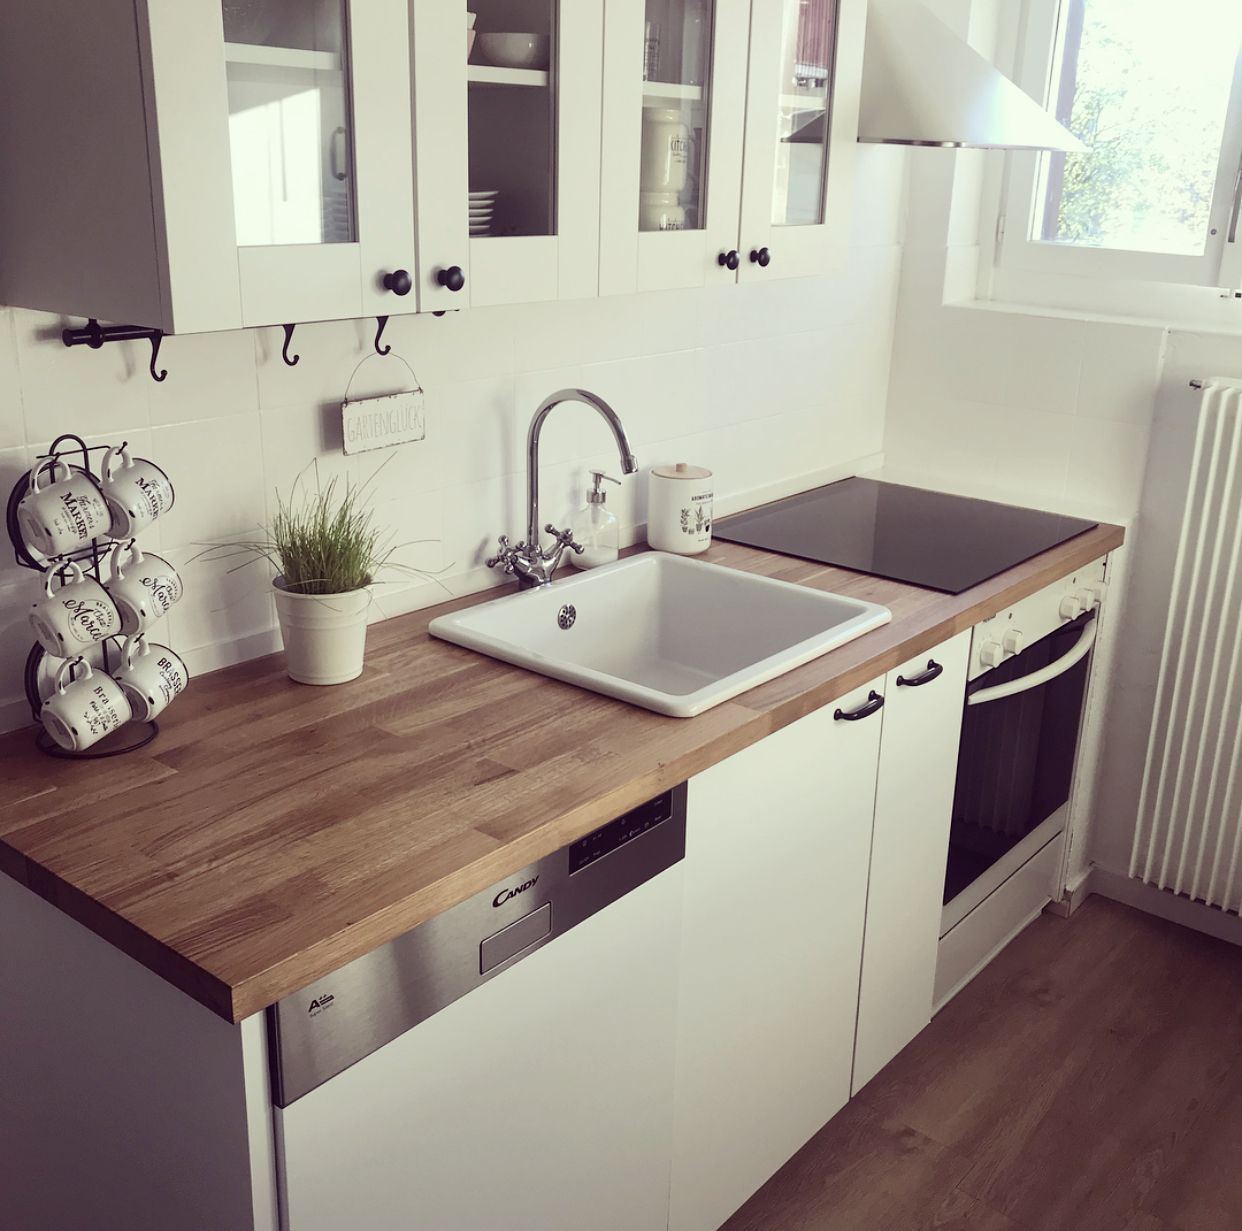 Knoxhult Ikea Kuche Vavedal Karlby Ikea Karlby Knoxhult Kuche Vavedal In 2020 Kitchen Design Small Kitchen Design Ikea Kitchen